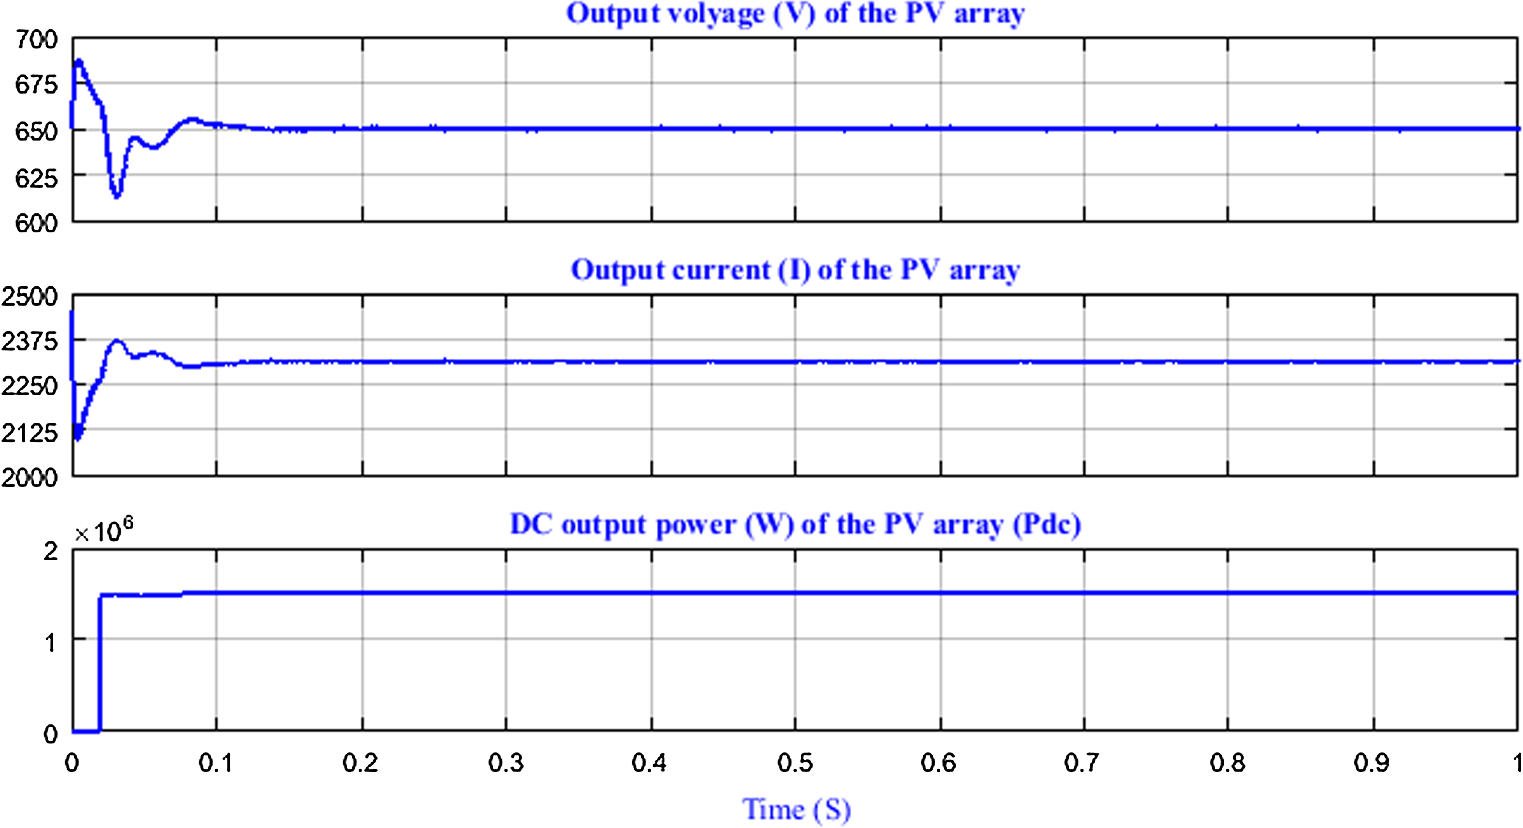 Modeling And Design Of Photovoltaic Power Plant Connected To The Mv Electricity Bibs Teach Electric Circuits Open Image In New Window